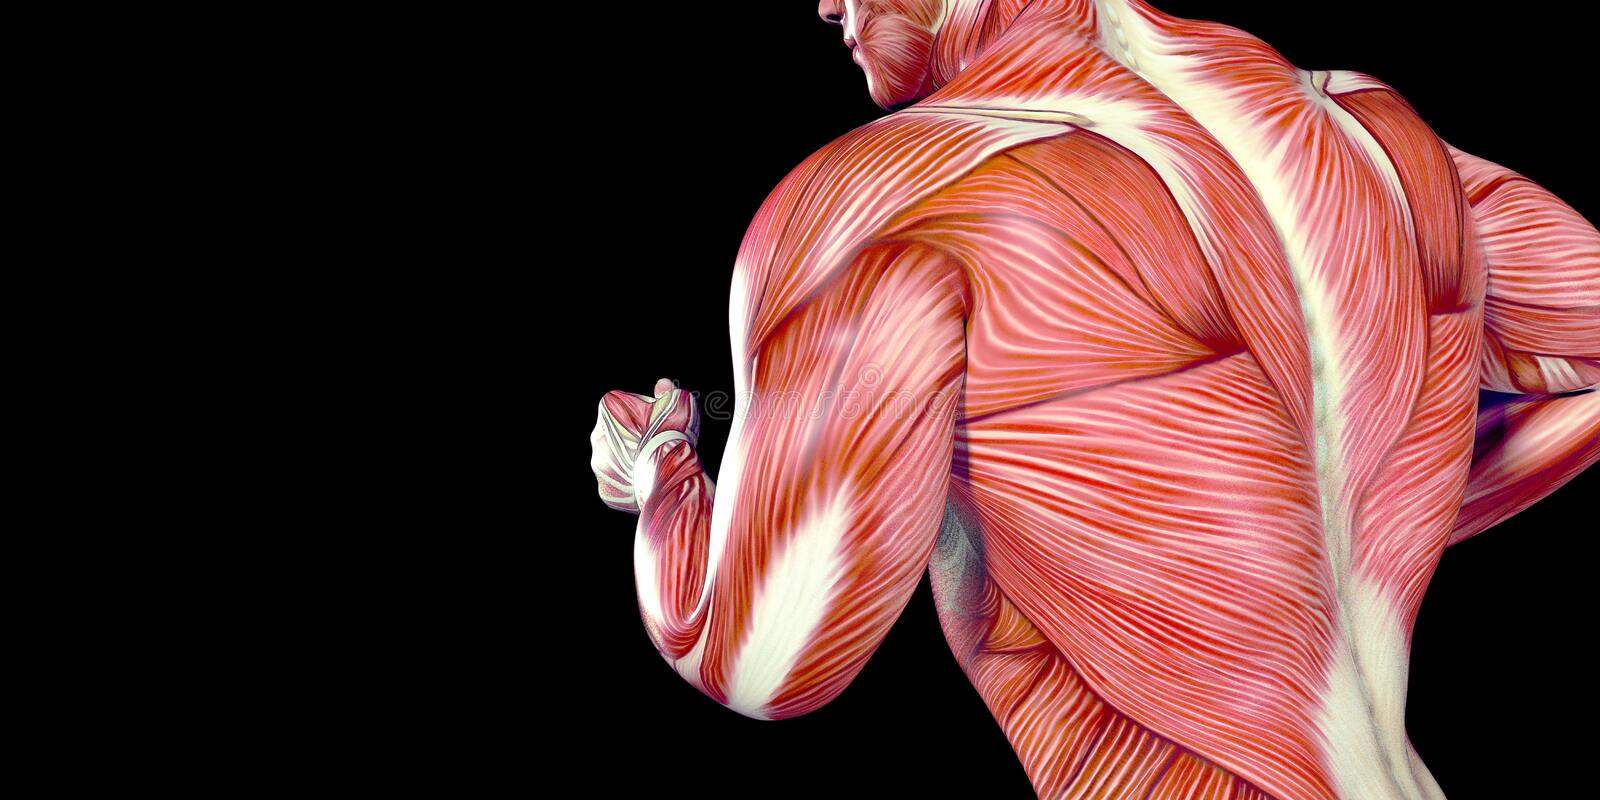 Human Male Body Anatomy Illustration of a human running with visible muscles. Human Male body Anatomy Illustration with visible muscles and tendons vector illustration